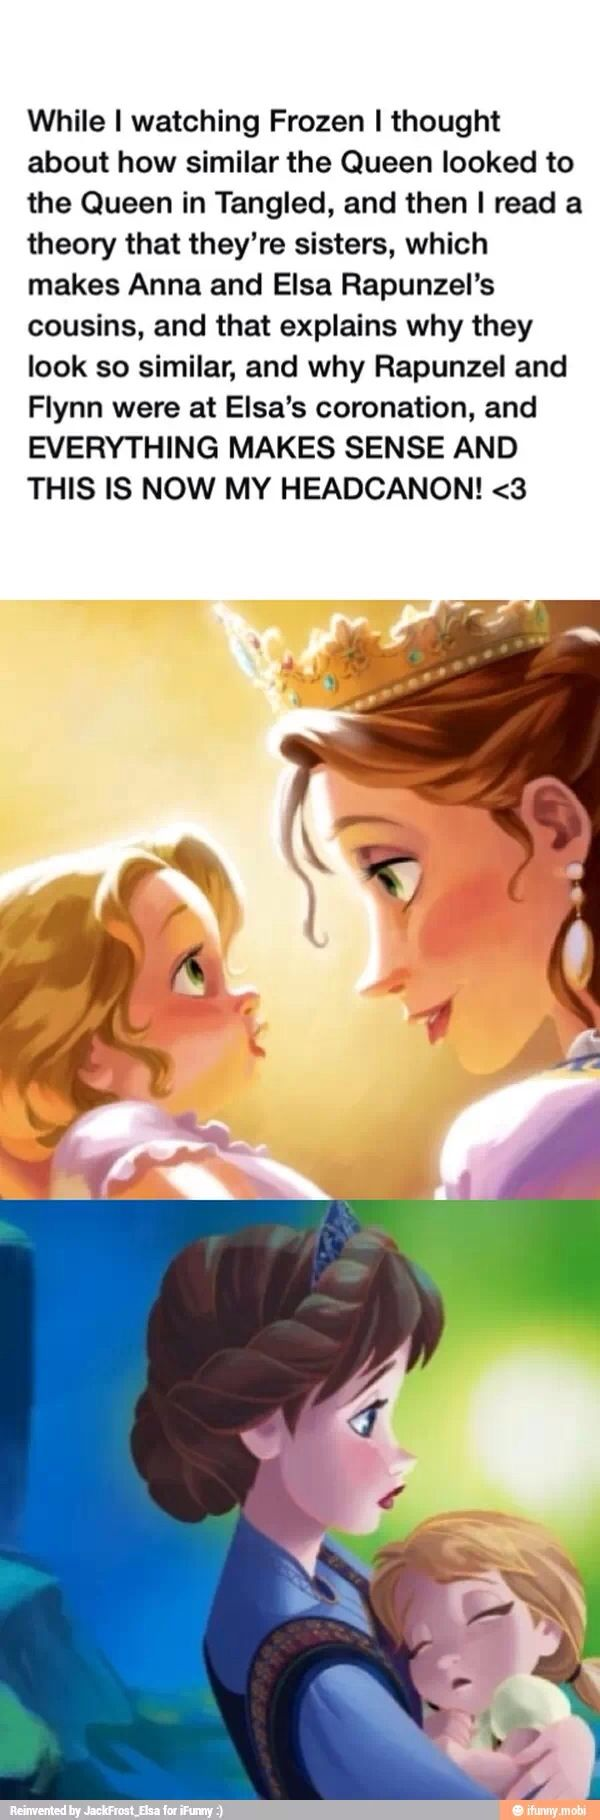 Frozen / Tangled Crossover - The Queen of Corona and the former Queen of Arendelle are sisters.